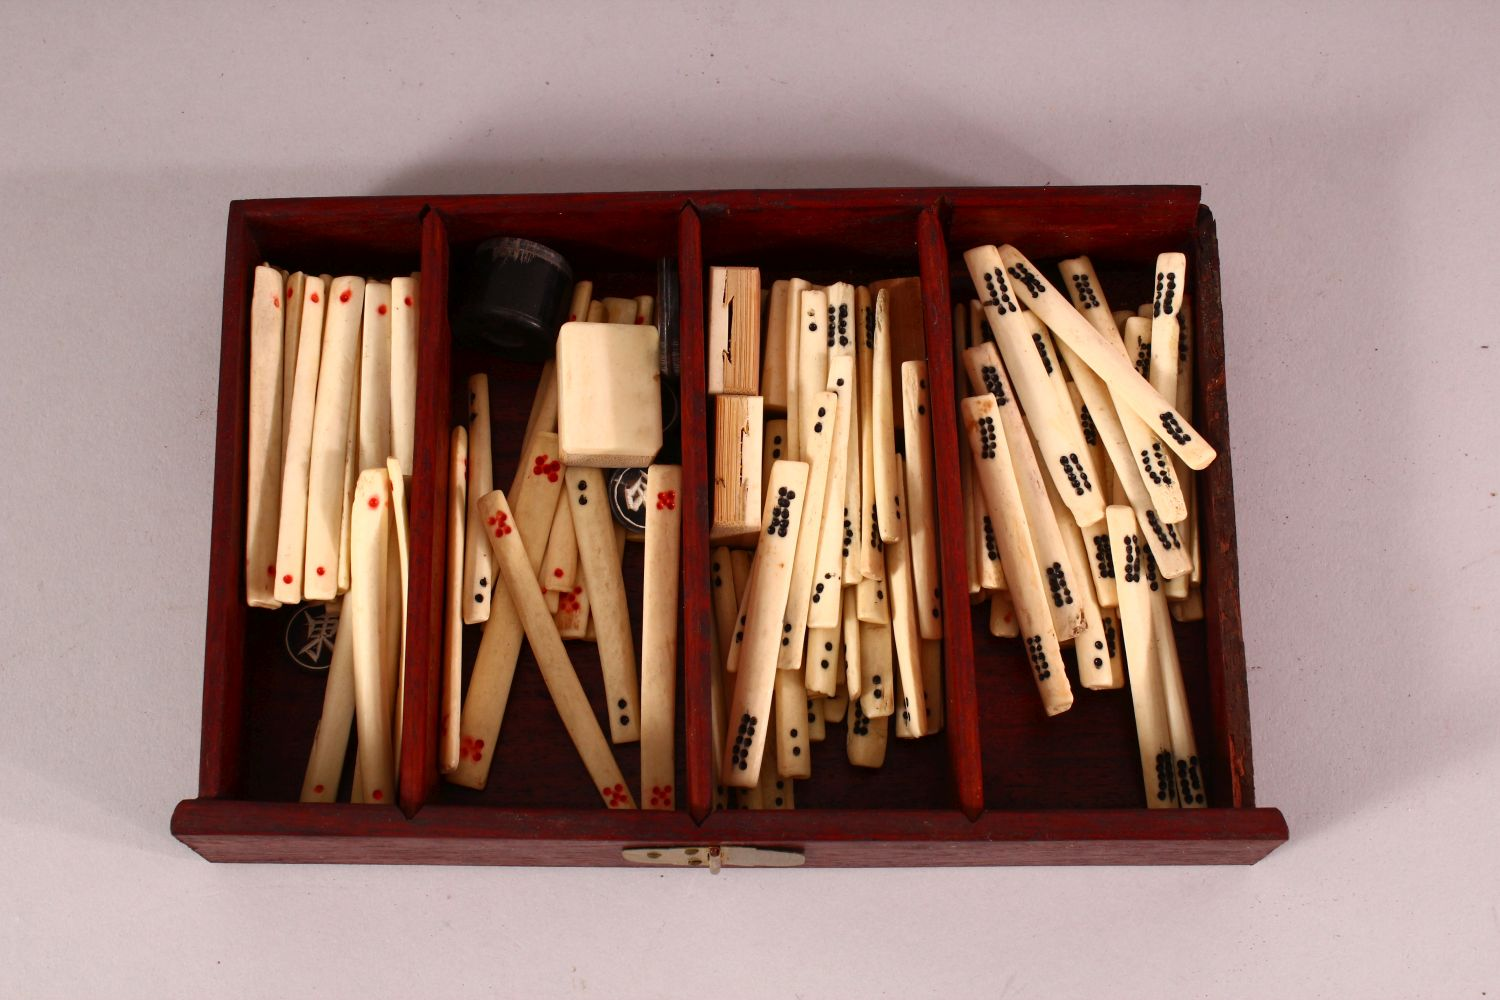 A CHINESE BAMBOO & BONE BOXED MAHJONG SET - comprising 56 drawers full of counters and sticks, - Image 3 of 6